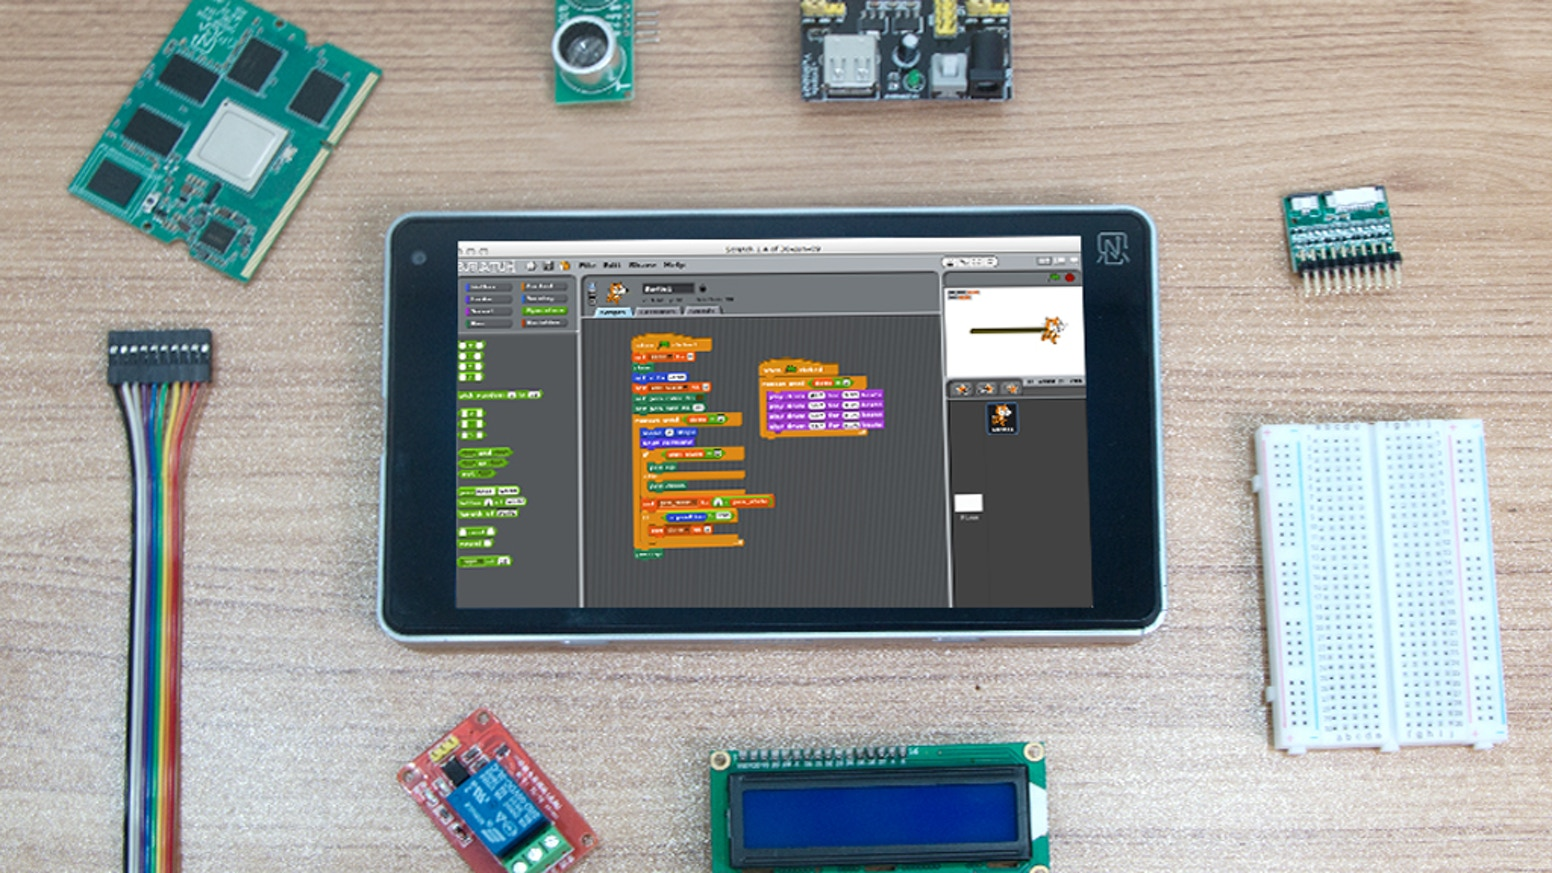 Ntablet is World 1st Commercial Open-source Tablet. Targeted at anyone who wants an all-in-one hobbyist device for creative projects.